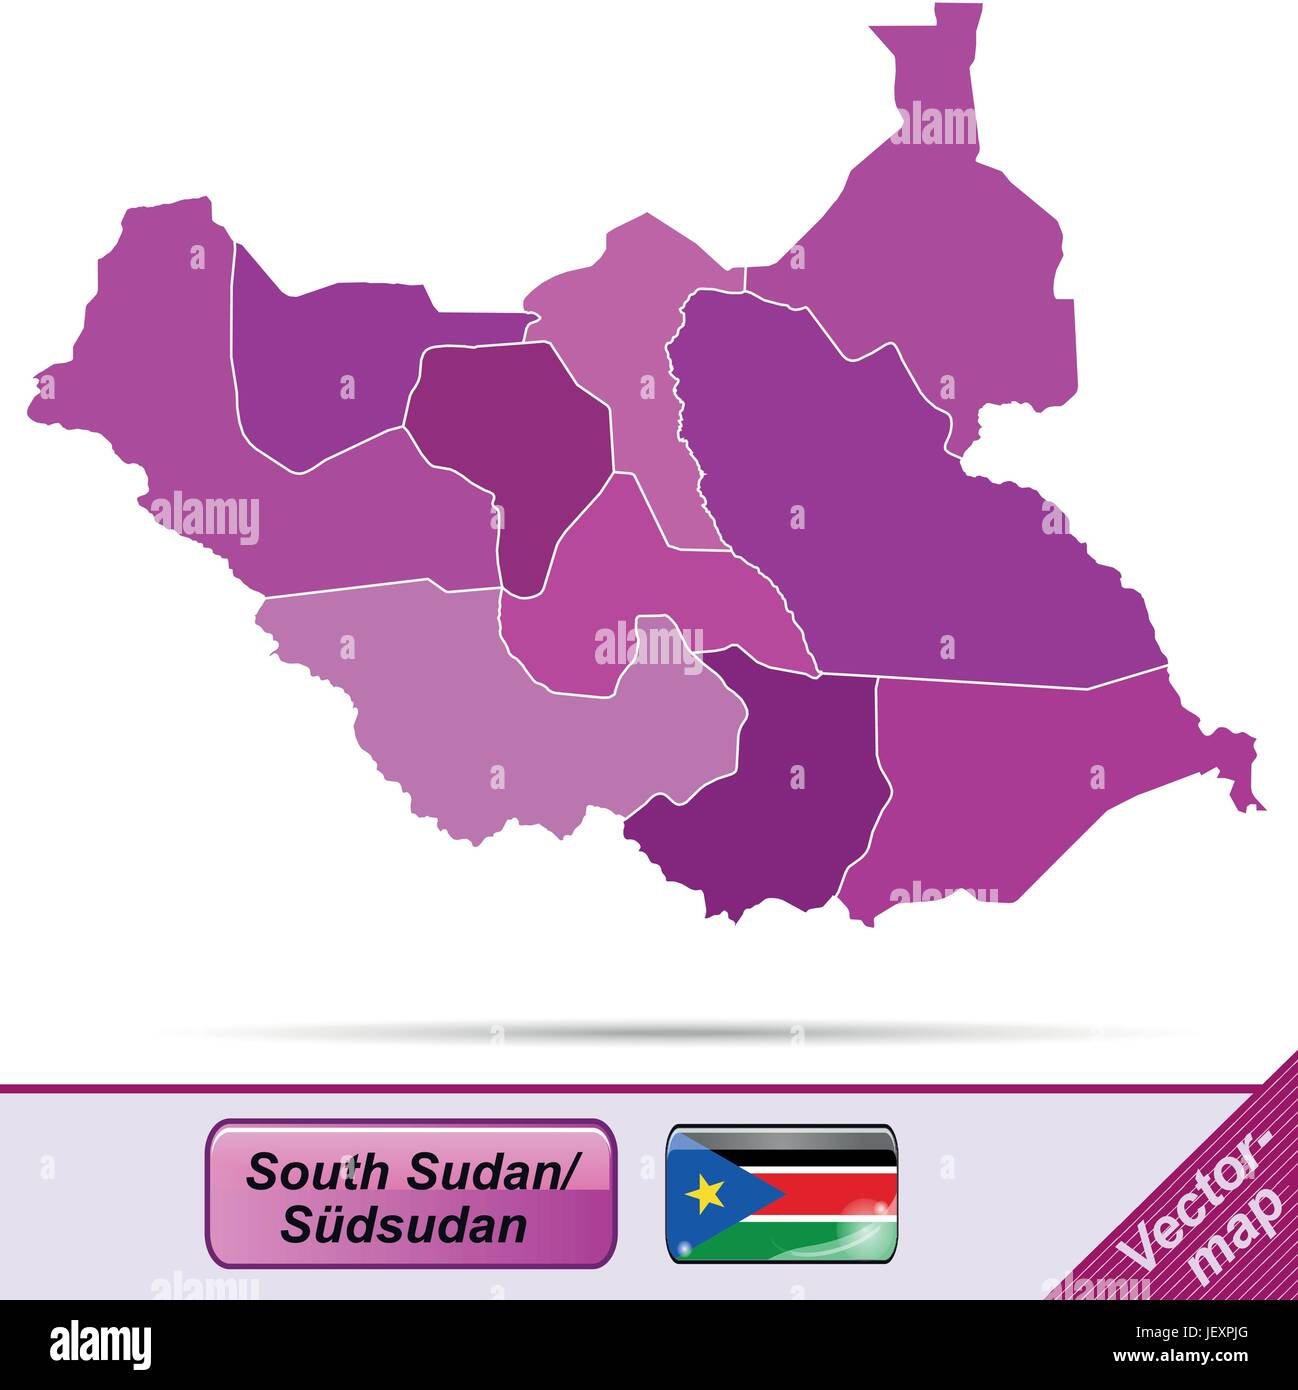 border map of southern sudan with borders in violet - Stock Image